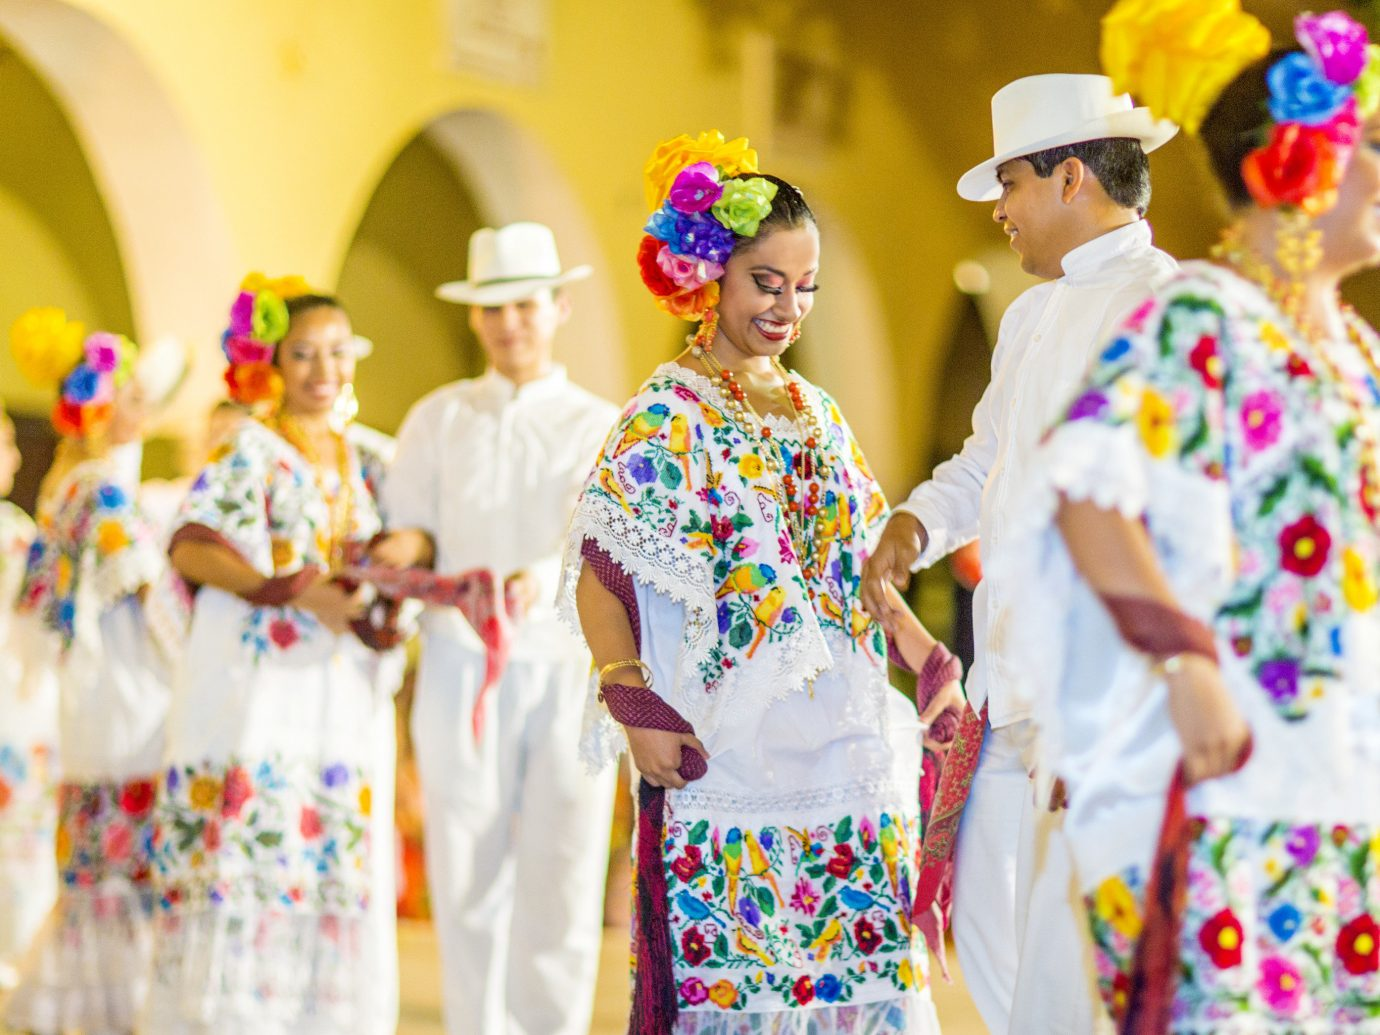 Mexico Trip Ideas Weekend Getaways person dancer performing arts Sport colorful Entertainment standing carnival tradition profession festival dance clown